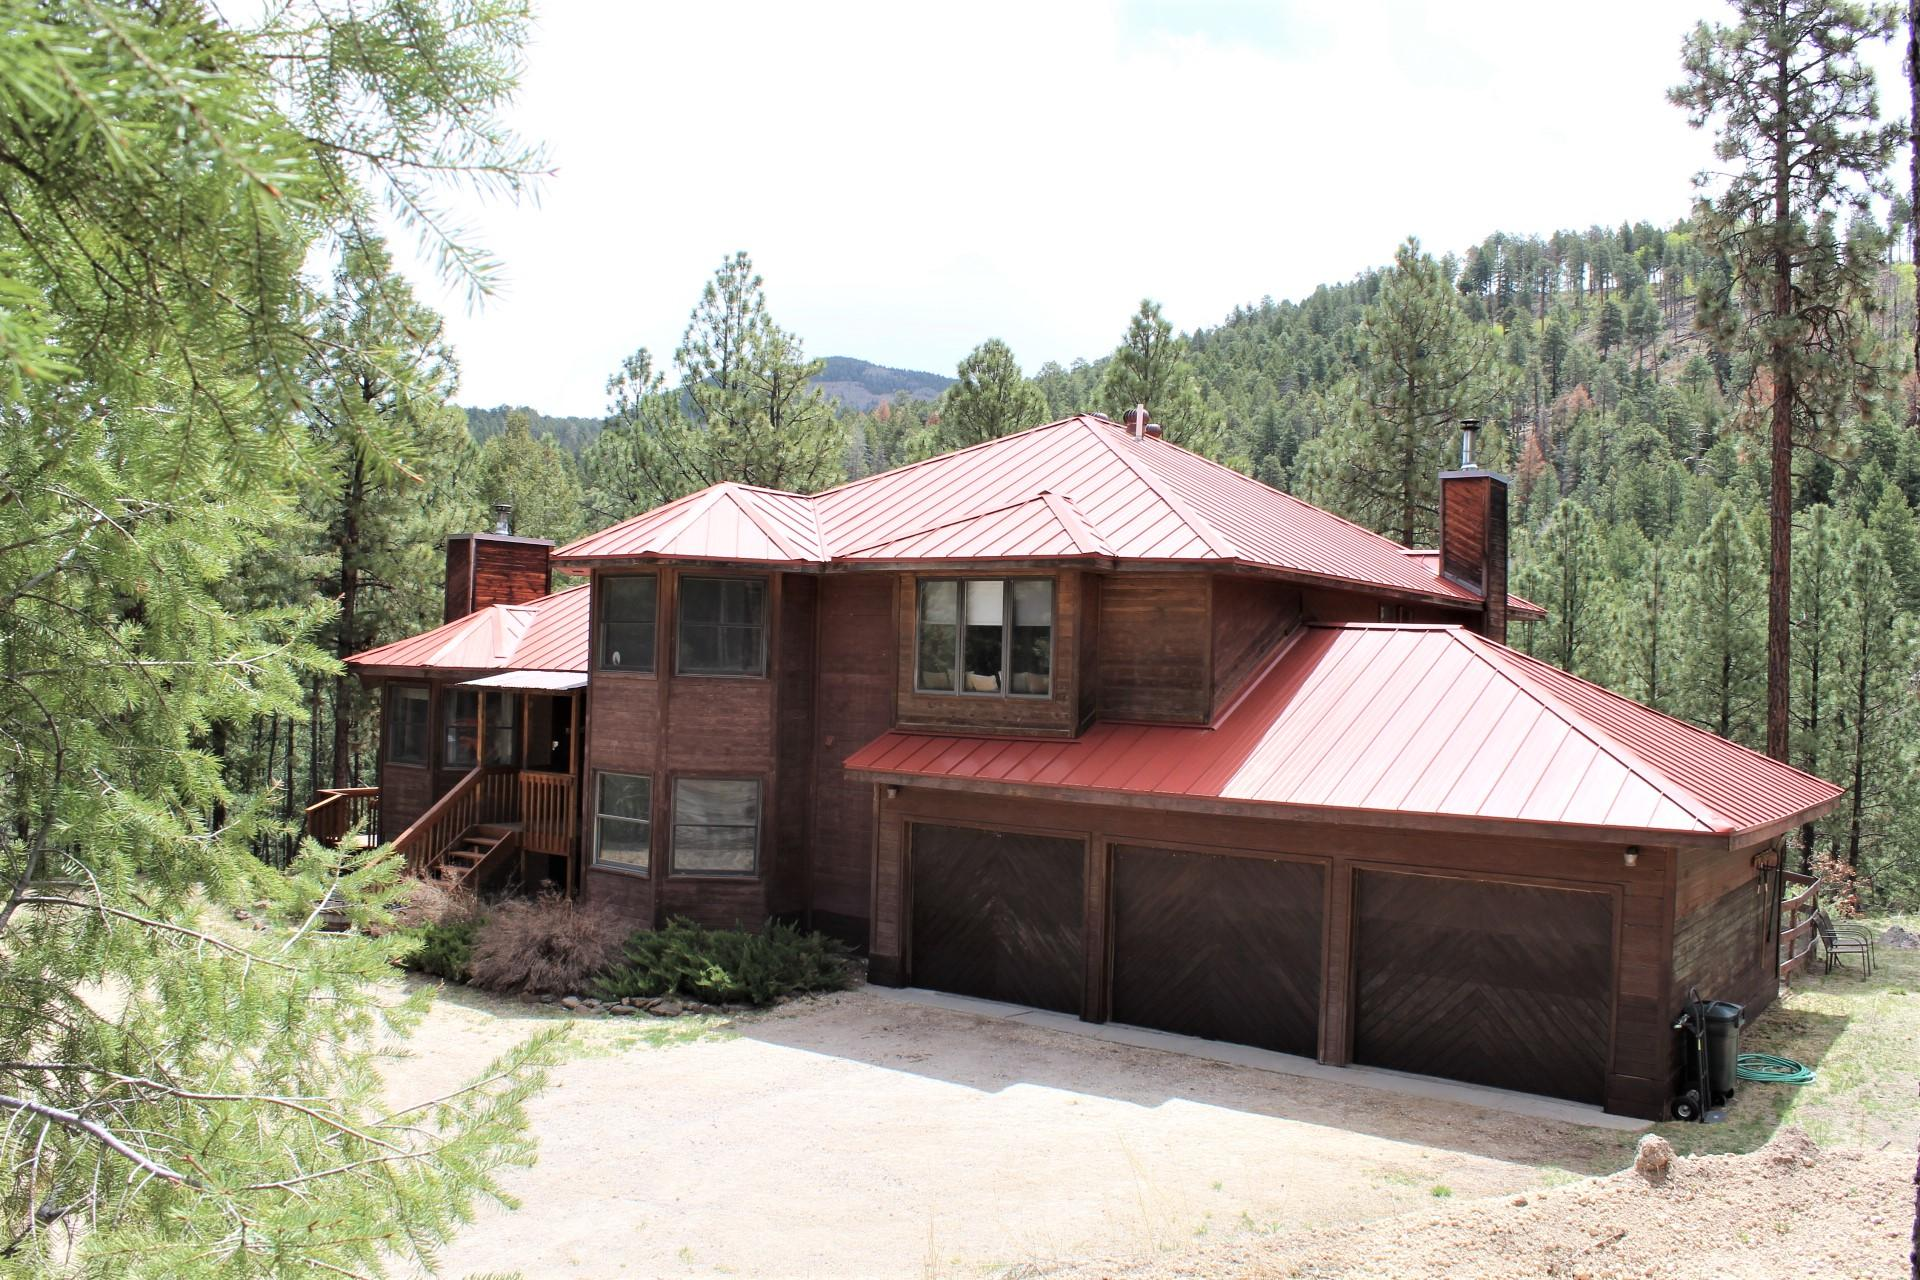 SELLER will give $20K ''Update'' Credit with the right offer to MAKE IT YOURS!! Jemez Mountain Hi-iigh!! Seriously...no kidding...where you feel like you have the forest all to yourself! Quiet & Delightful!! Unique Custom Home with room for everyone & everything to make a fabulous life in the mountains! Over 4000 sq ft AND a 3 car garage on over 5 acres of beautifully forested land. Sweet, well-arranged kitchen has eat-at-bar, dining area, loads of cabinet/pantry space, double oven and deck access. Formal Dining and Den access deck too! You're gonna love the view from the hot tub perch! Master has huge lovely bath with step in shower and jetted garden tub, sitting room/office & super sweet balcony for late night star-gazing! Basement Rec-Room & pool table can stay! Unlimited Possibilities!